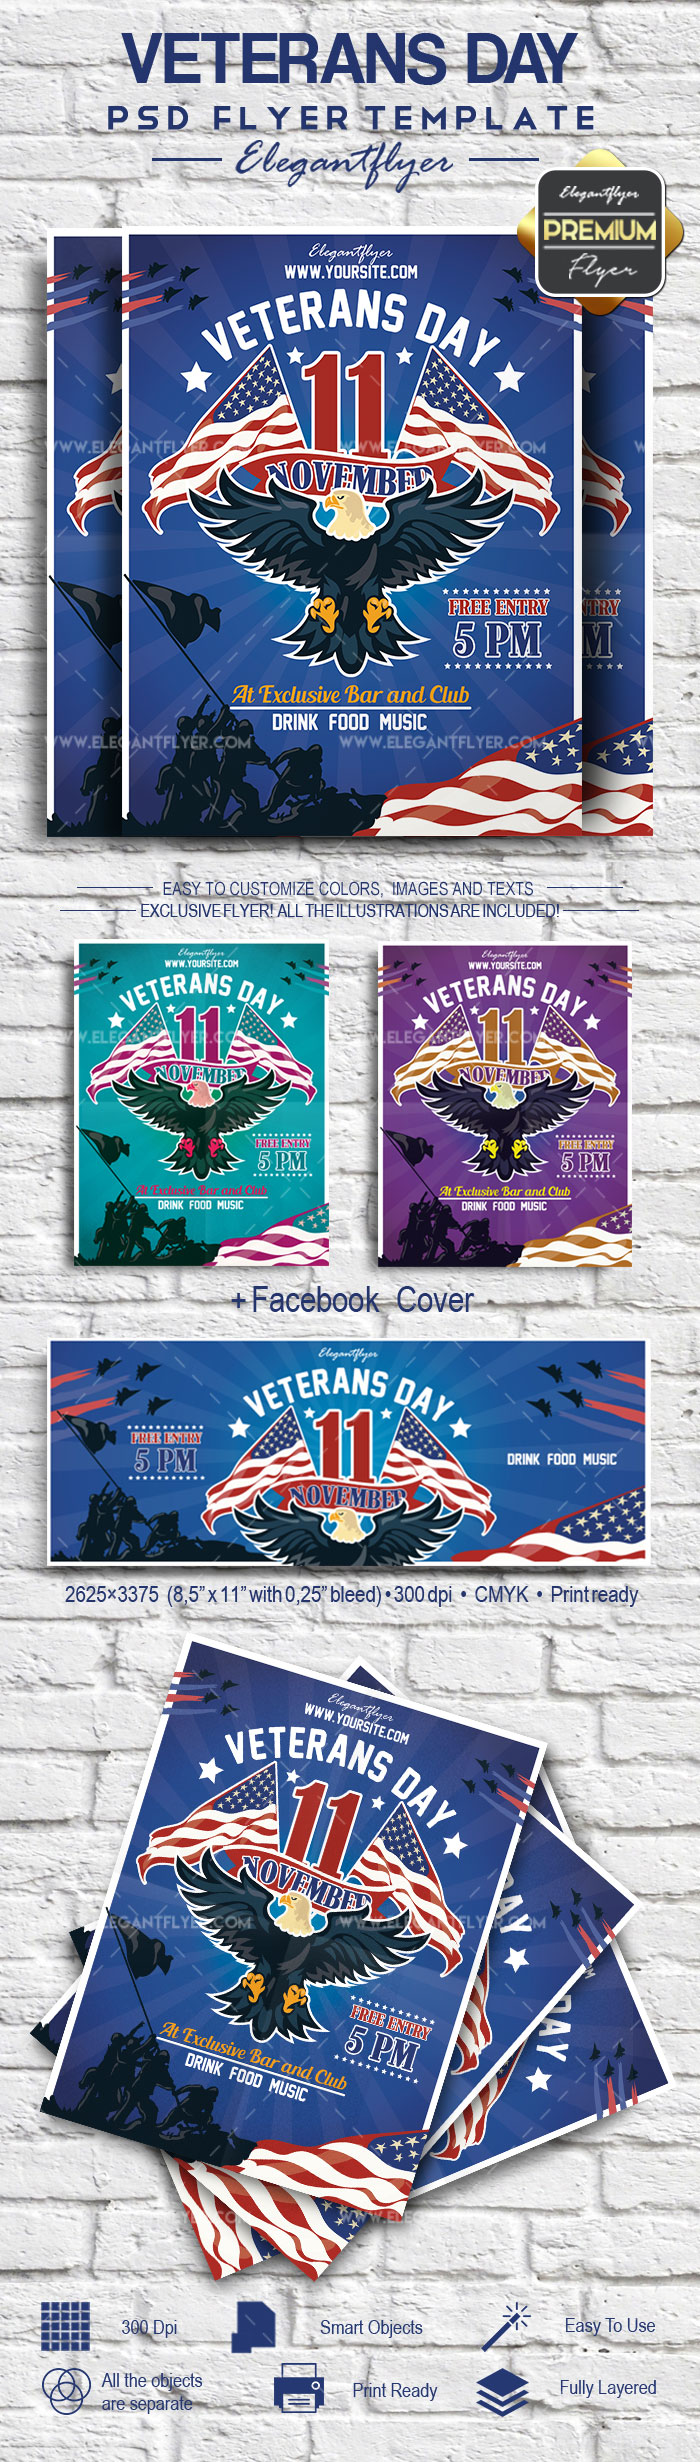 Flyer for Veterans Day Eagle